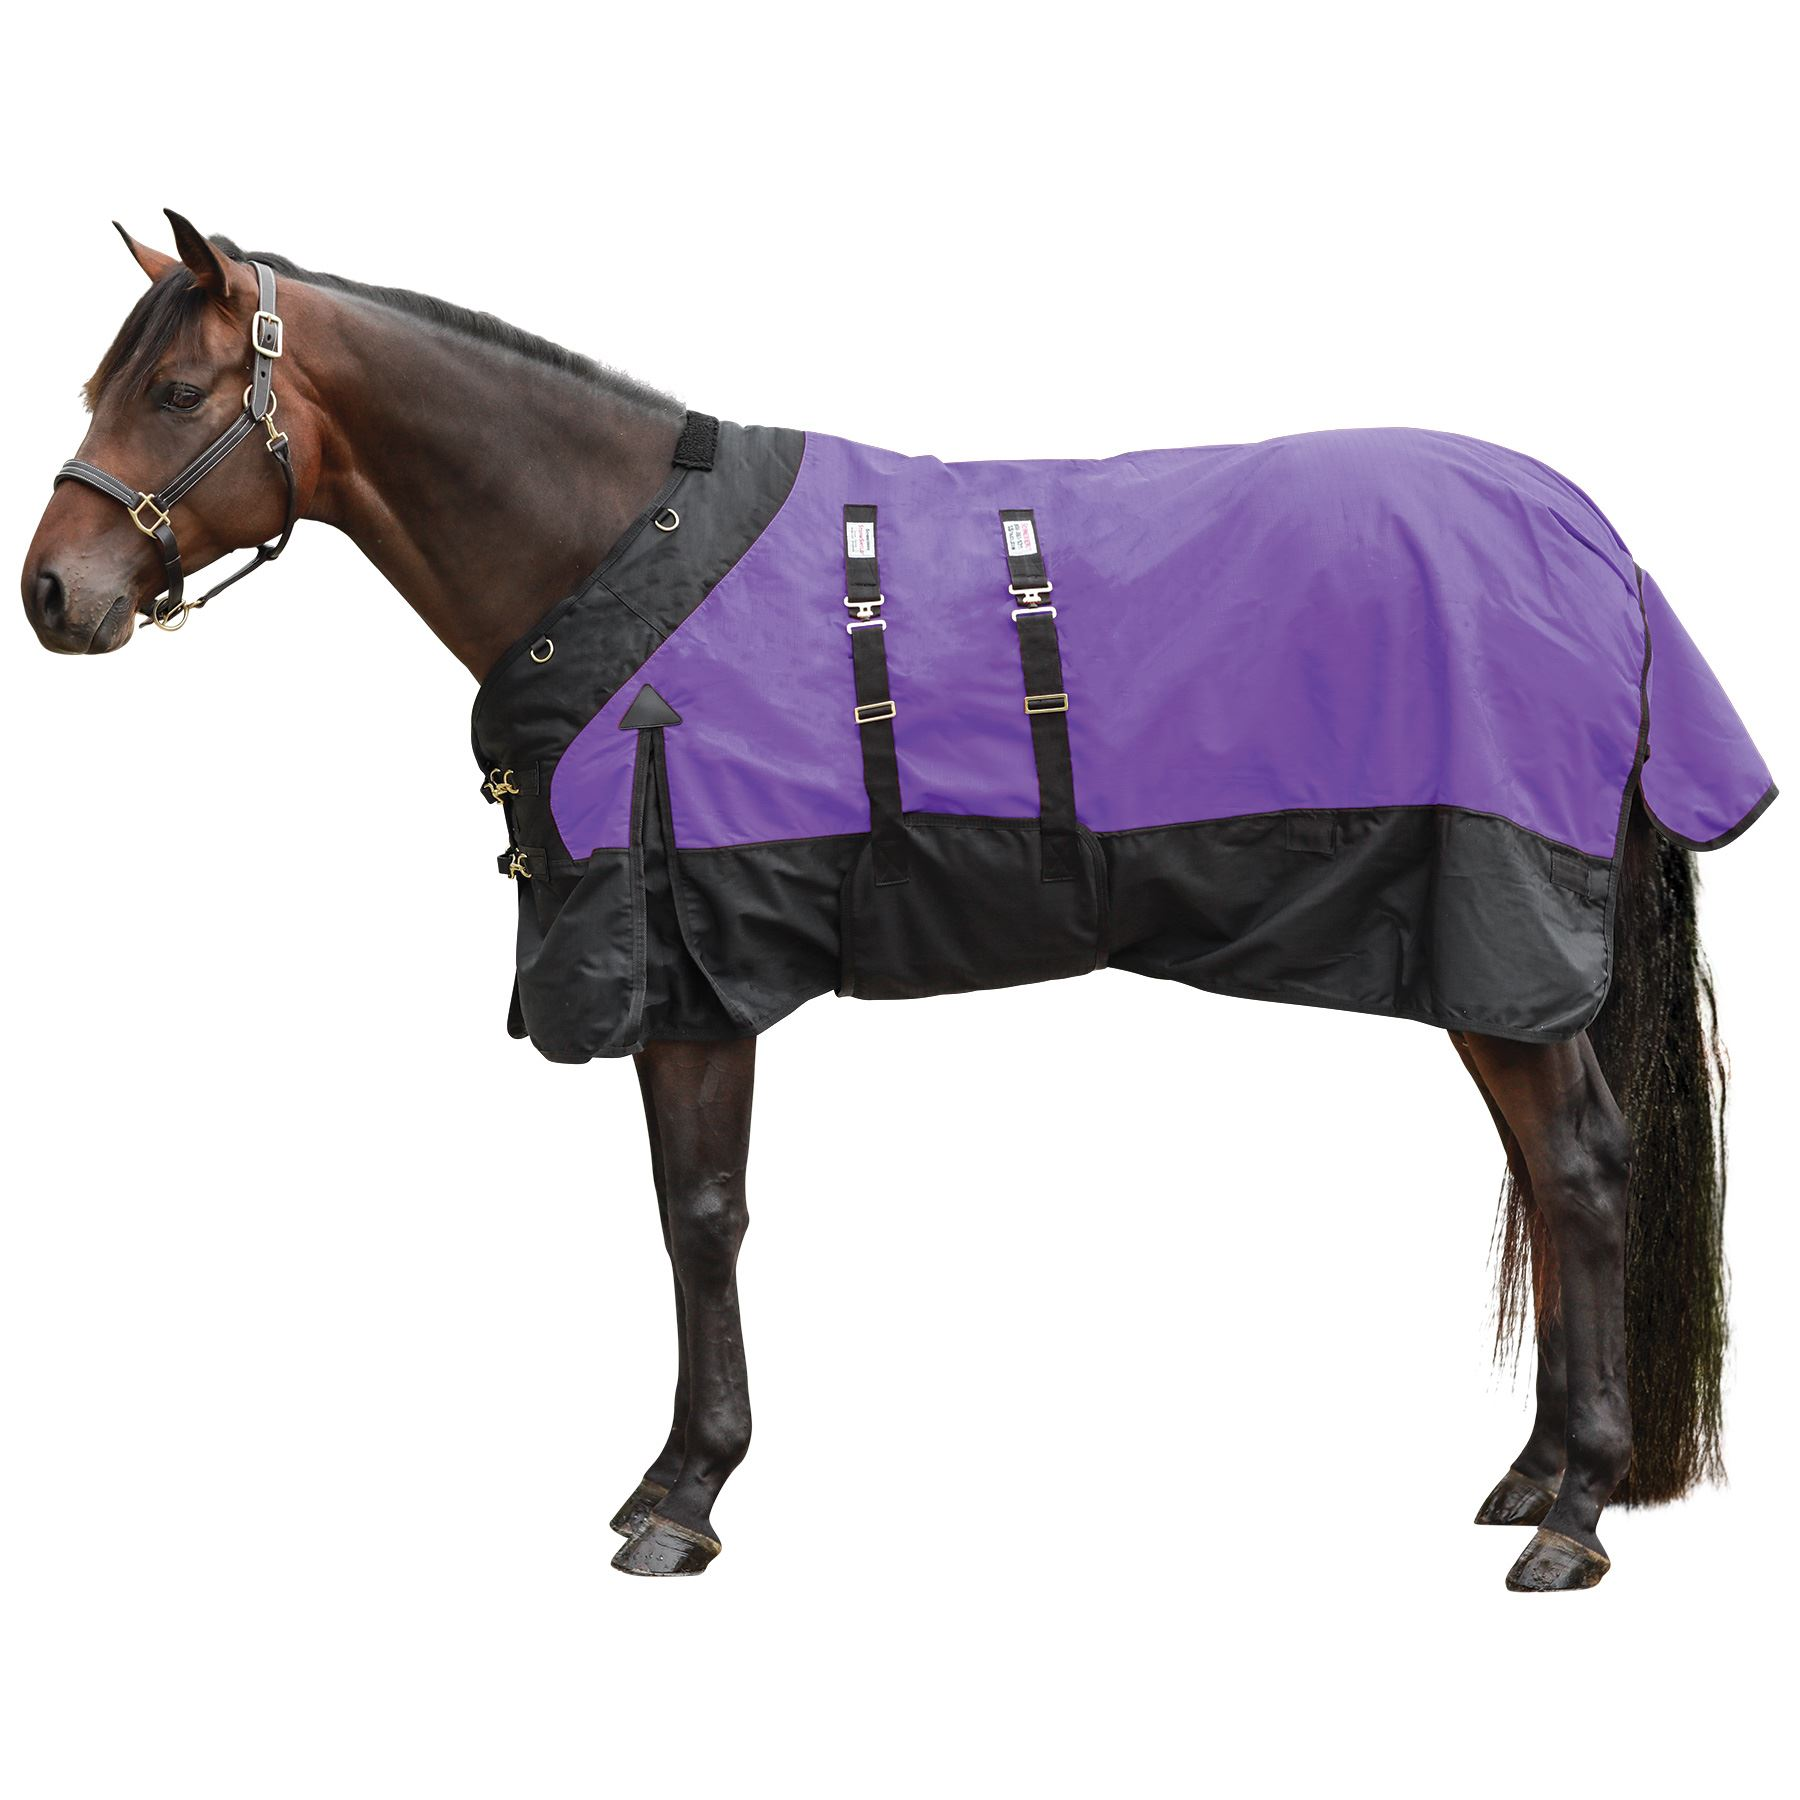 StormShield® Contour Collar Classic Bellyband Turnout Blanket - Heavyweight